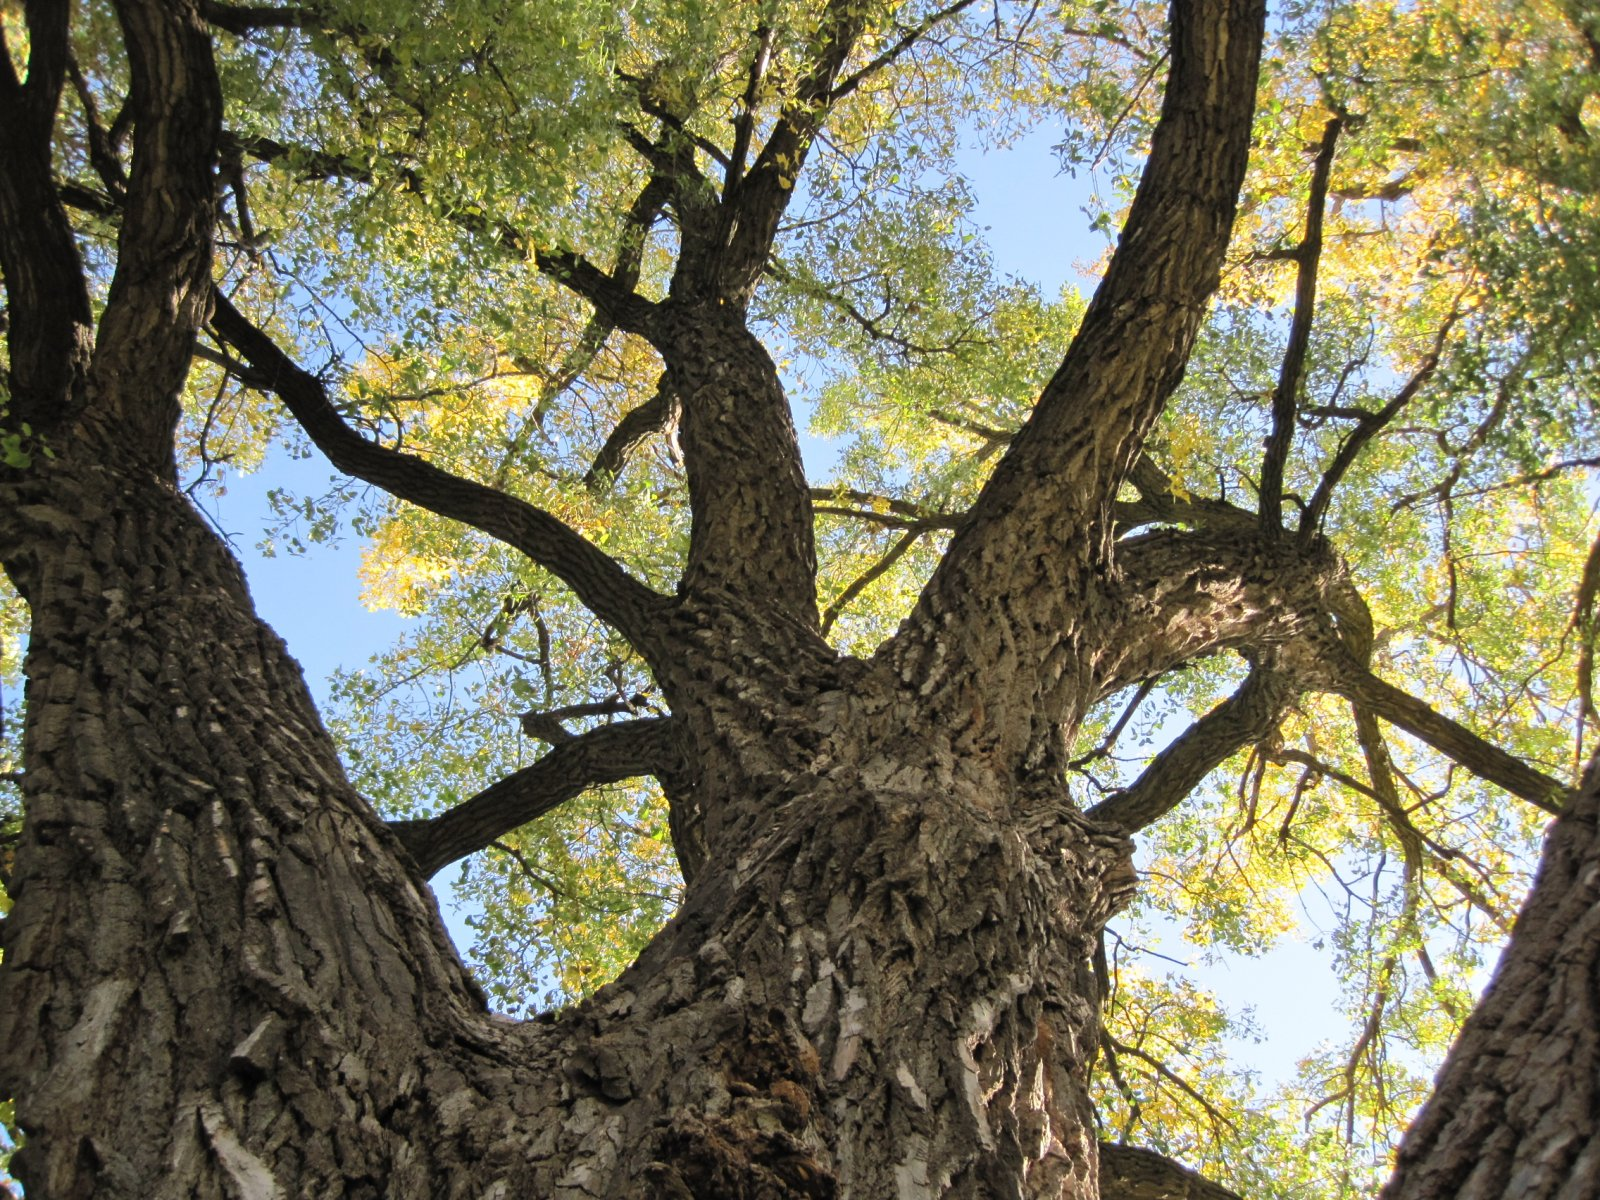 looking up into the tree canopy of a cottonwood